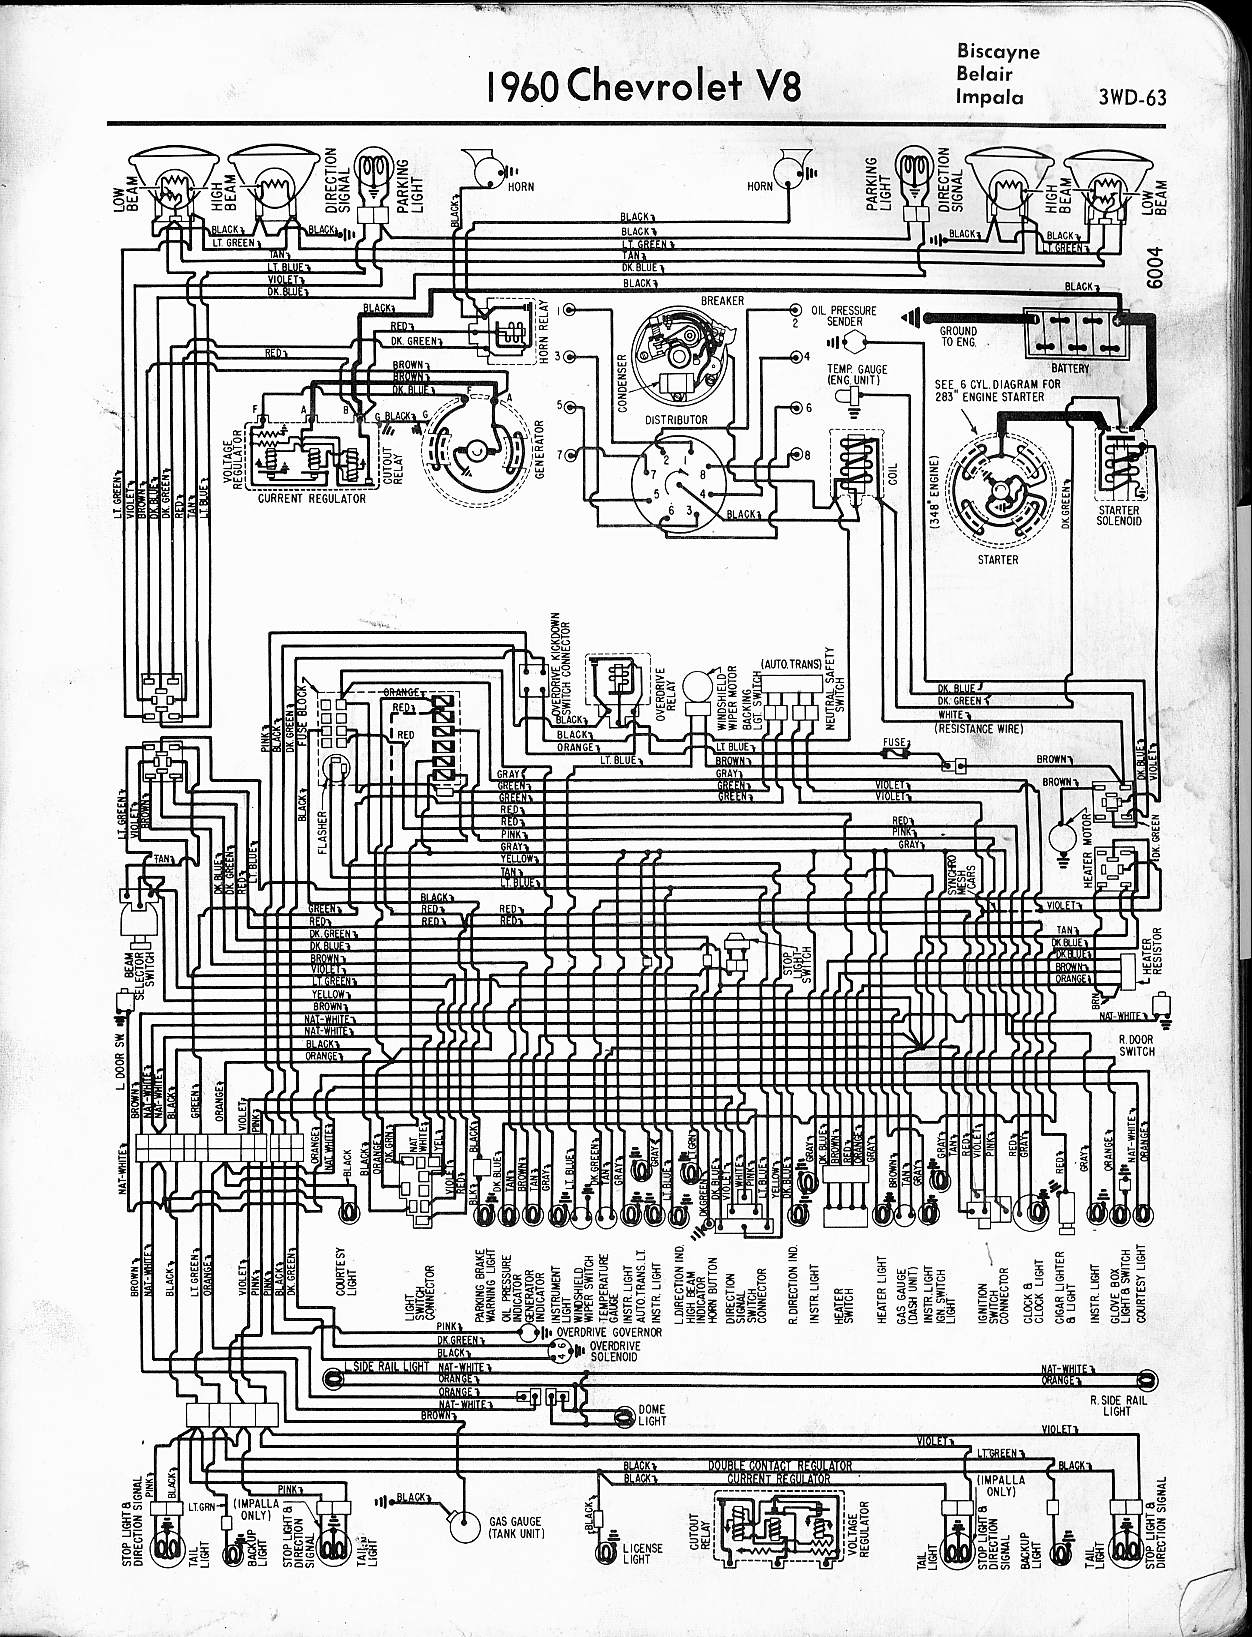 1964 Impala Wiring Diagram Headlights - Wiring Diagram •